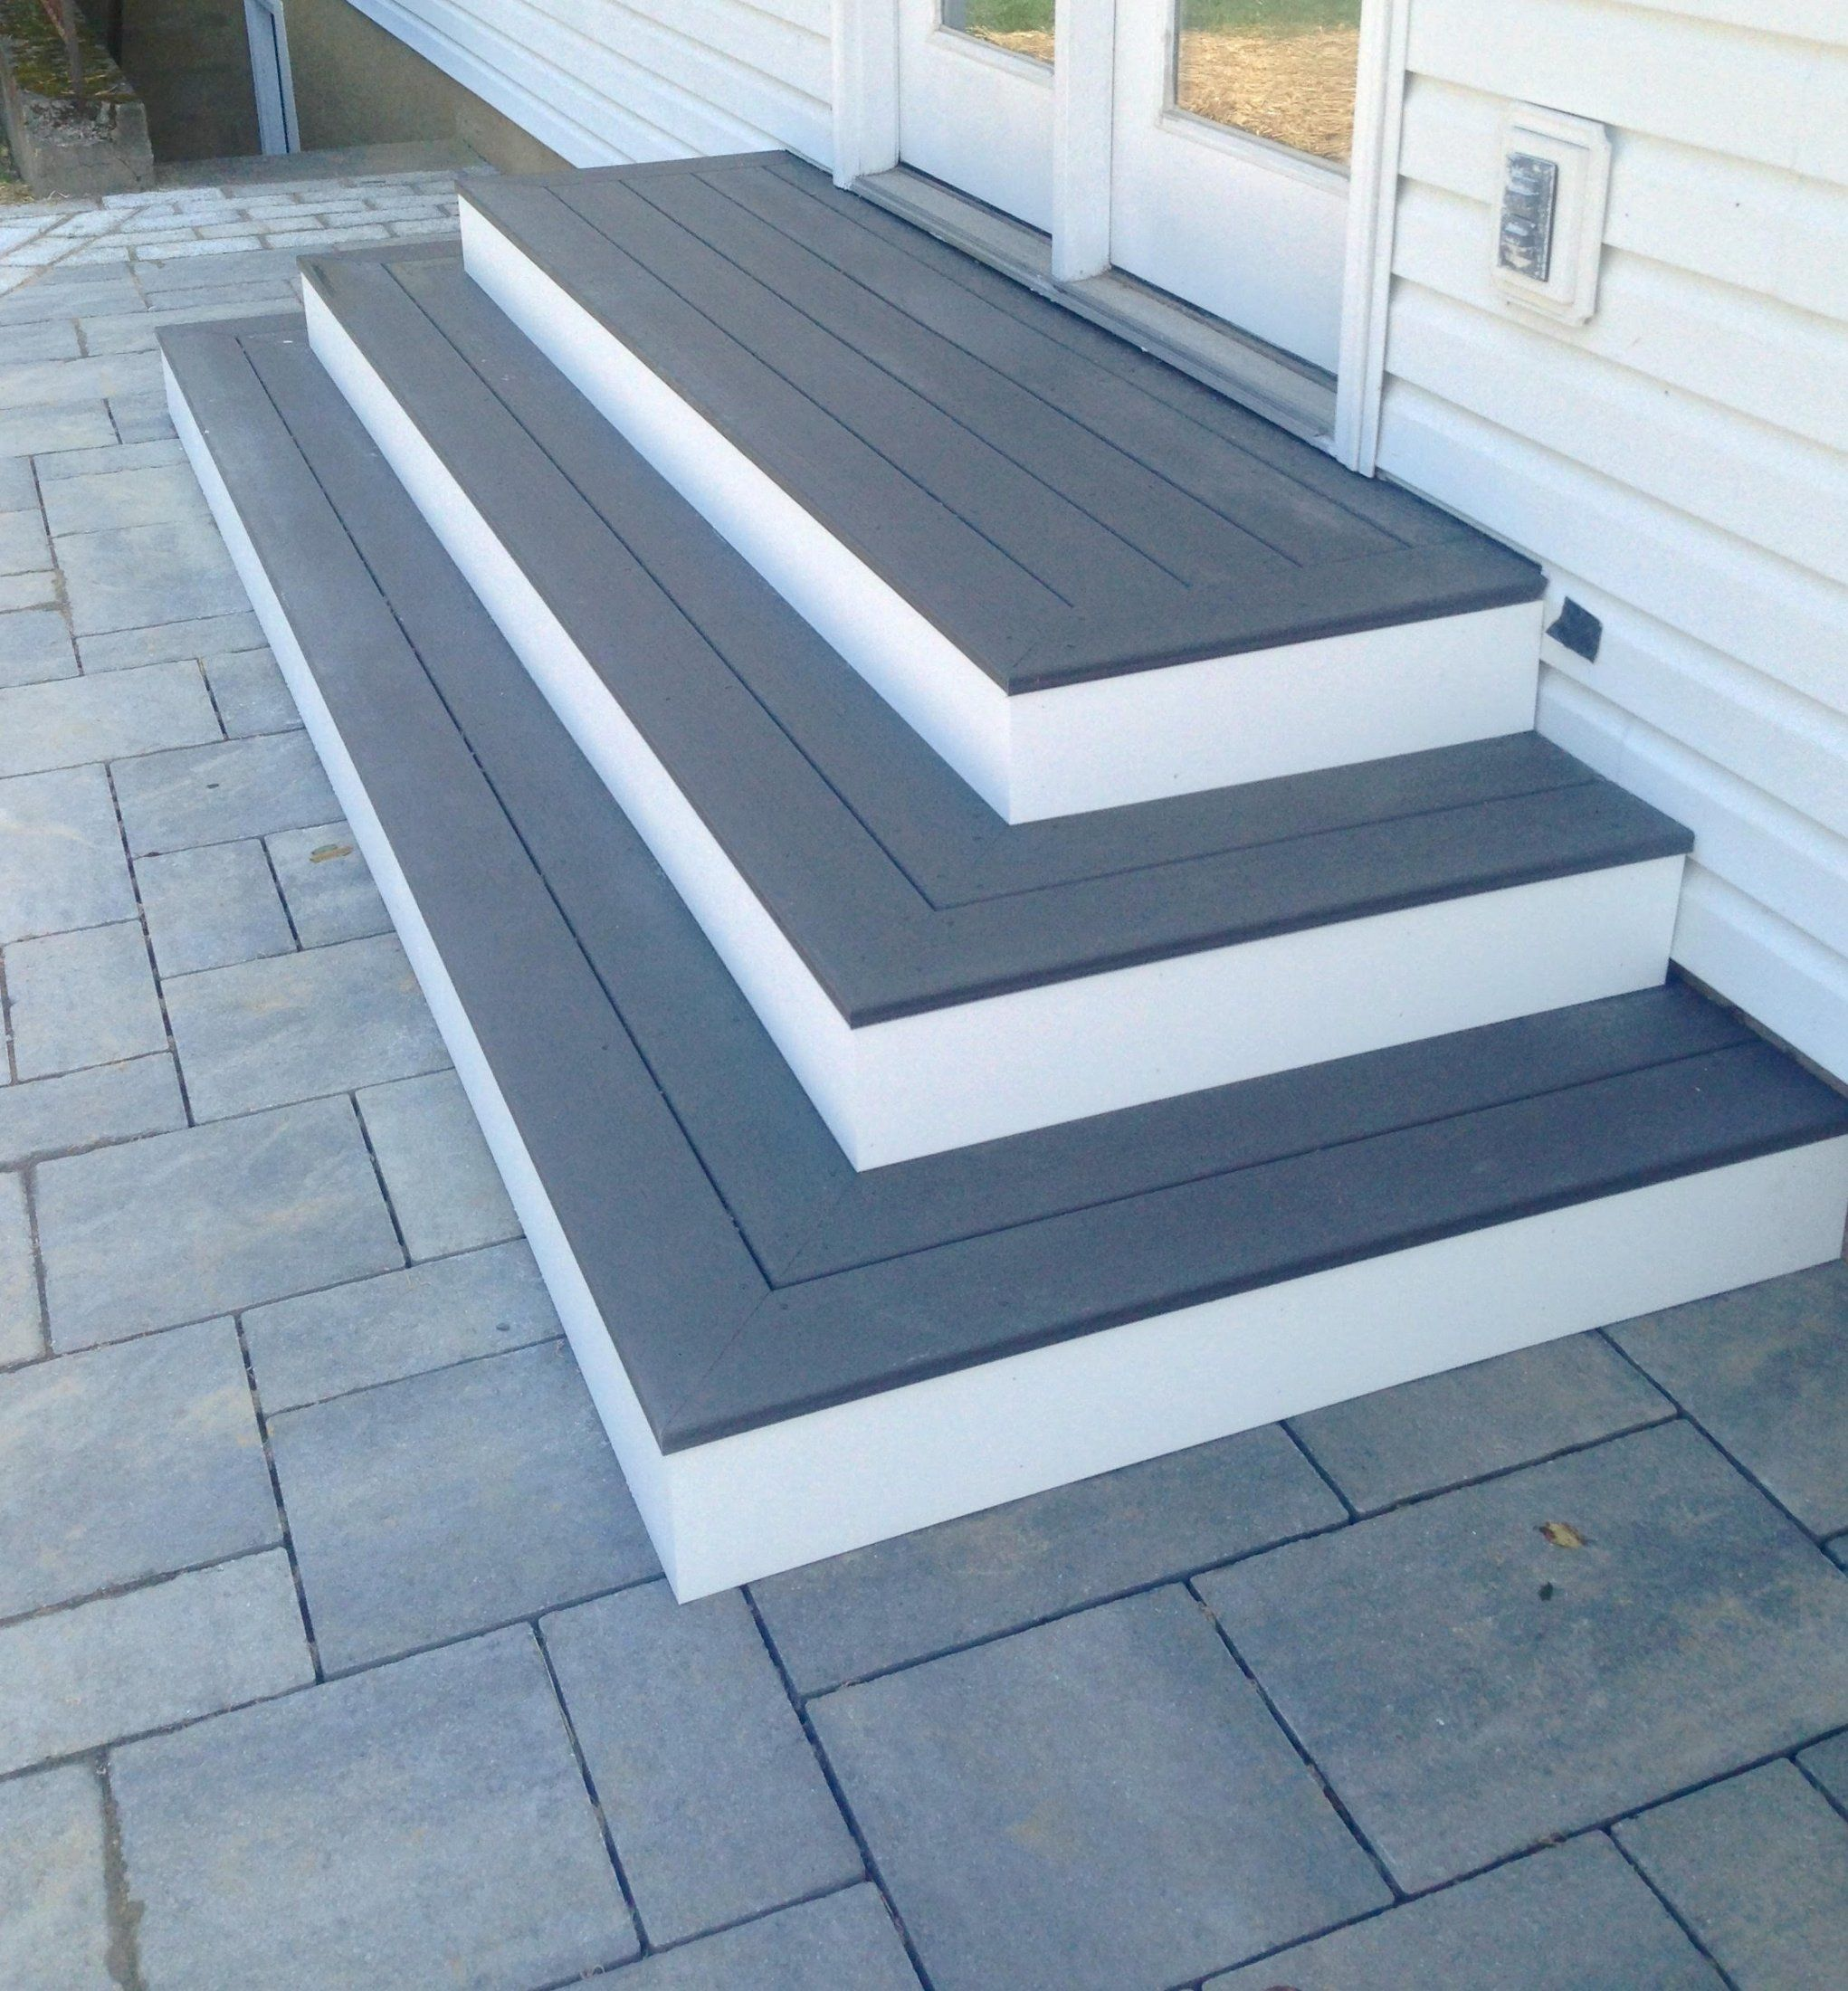 Best Decks And Structures Patio Stairs Patio Deck Designs 640 x 480